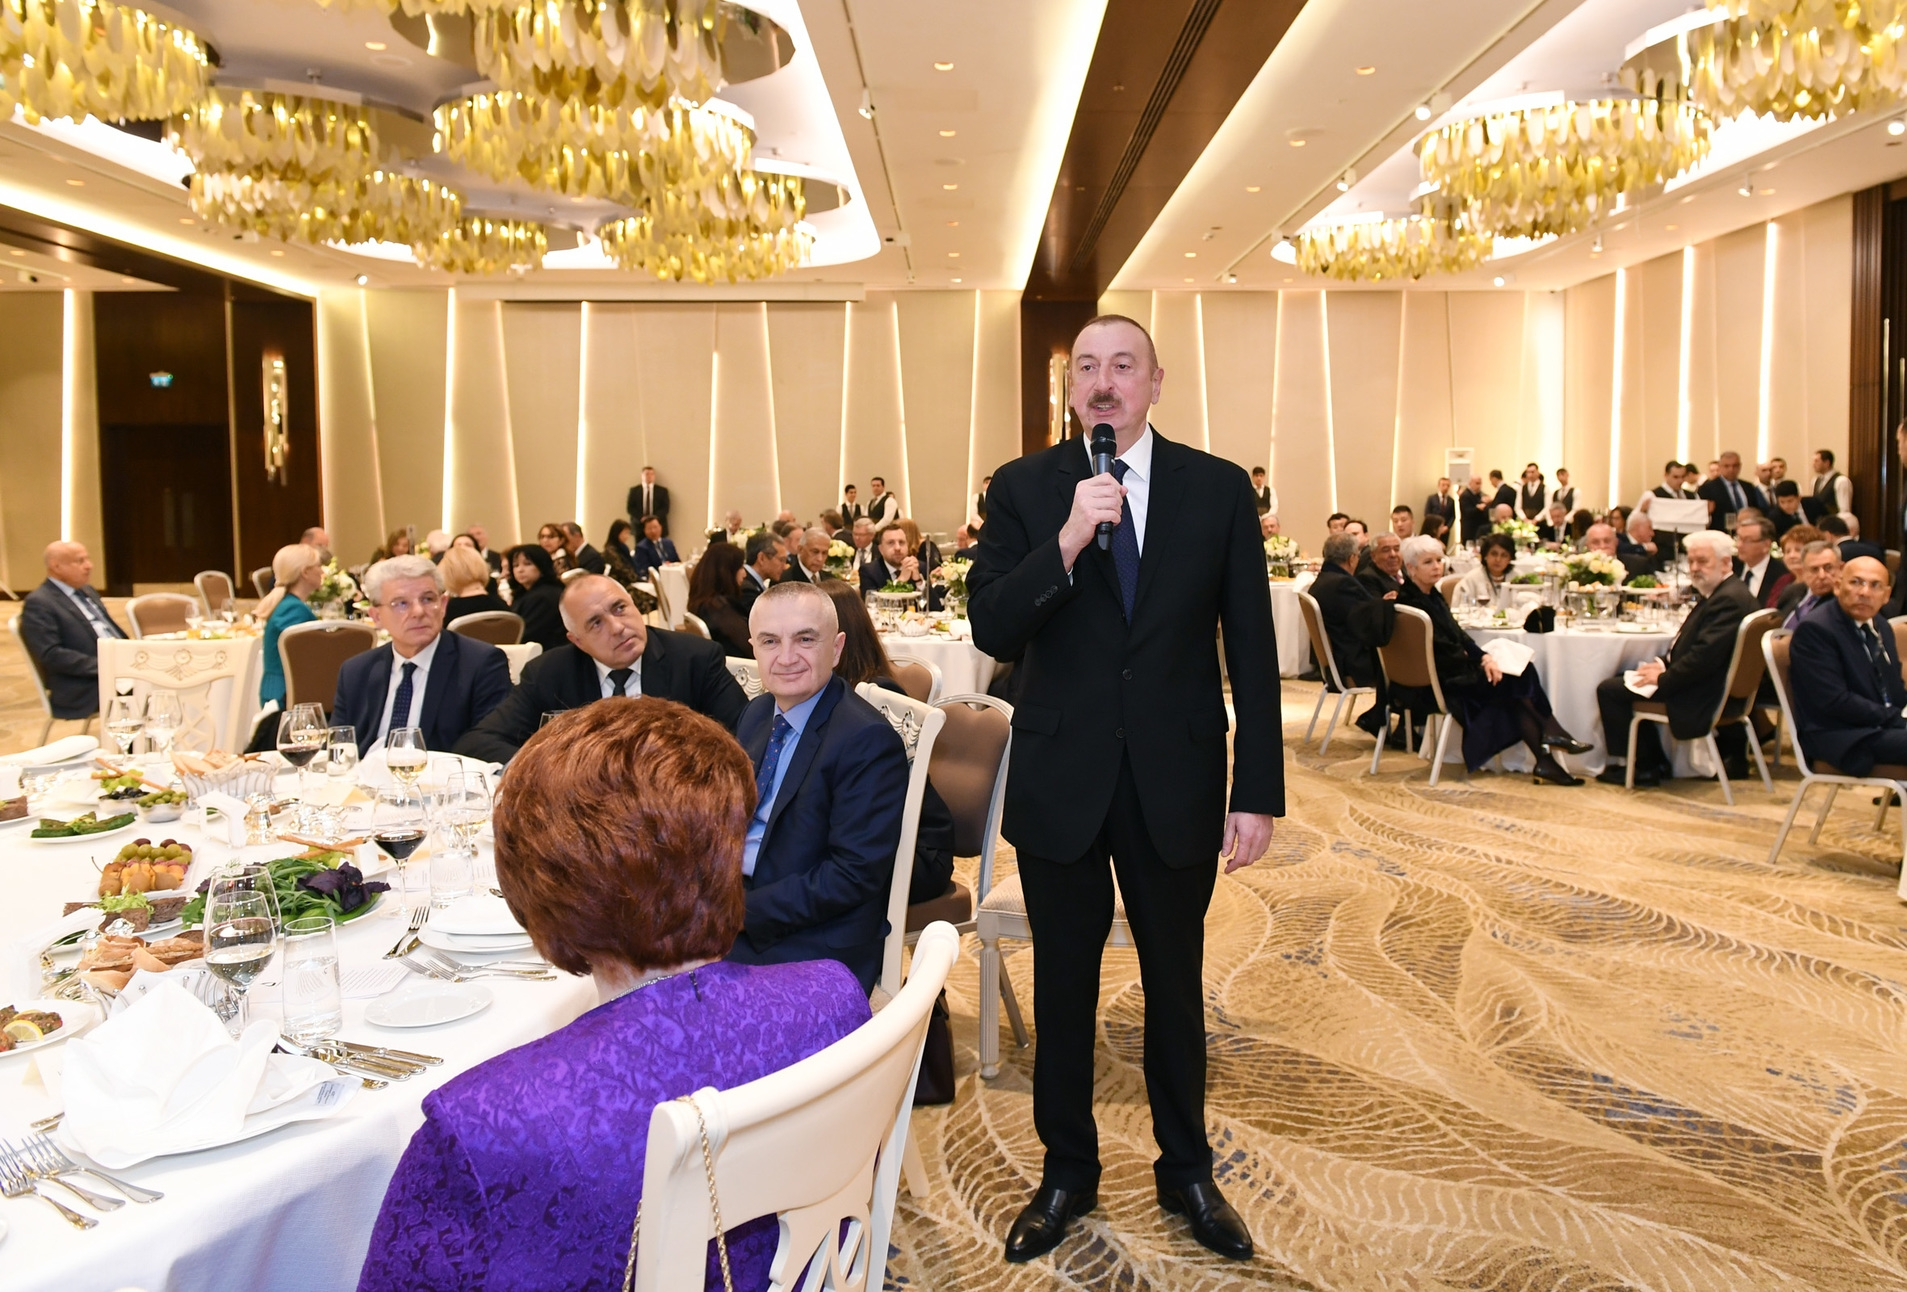 Ilham Aliyev gives a speech in a gold and crystal room